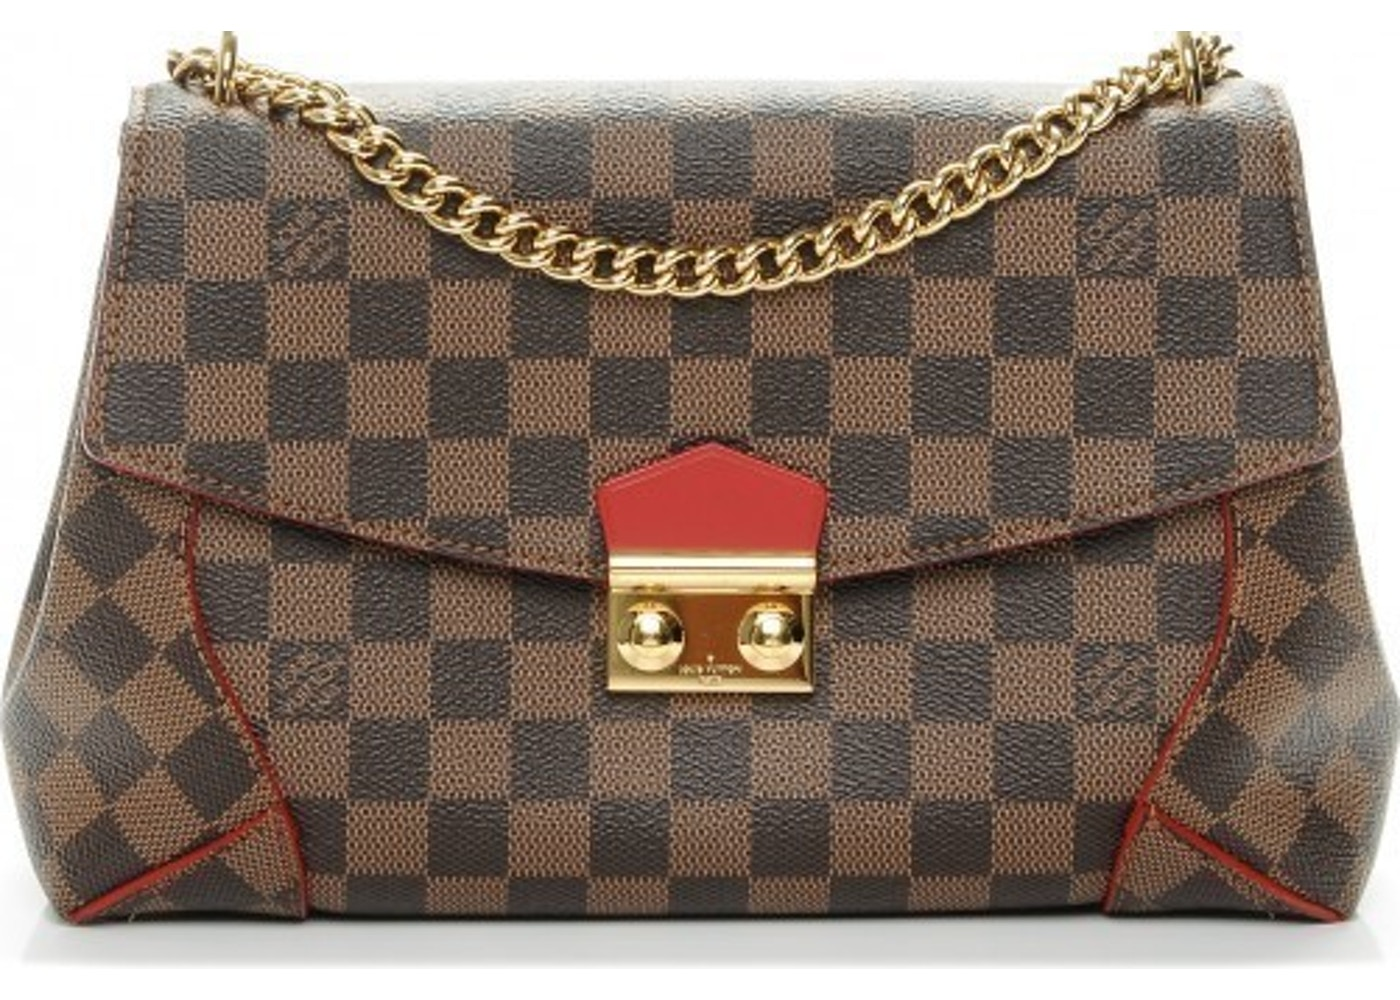 d04e8d38f28b Louis Vuitton Caissa Damier Ebene Brown Cerise Cherry